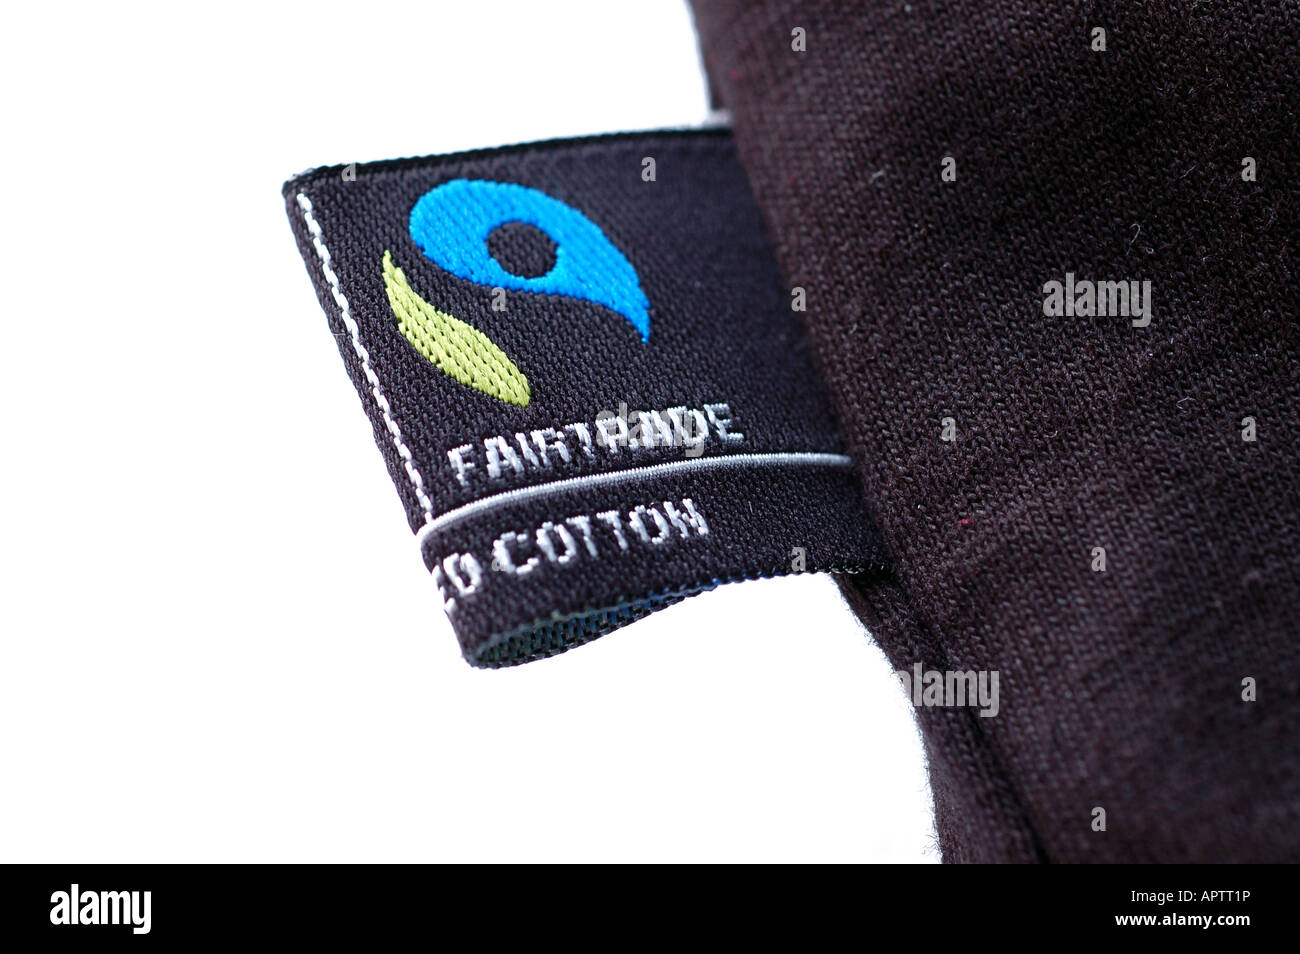 fair trade clothing logo on a black t shirt stock photo royalty free image 15863697 alamy. Black Bedroom Furniture Sets. Home Design Ideas